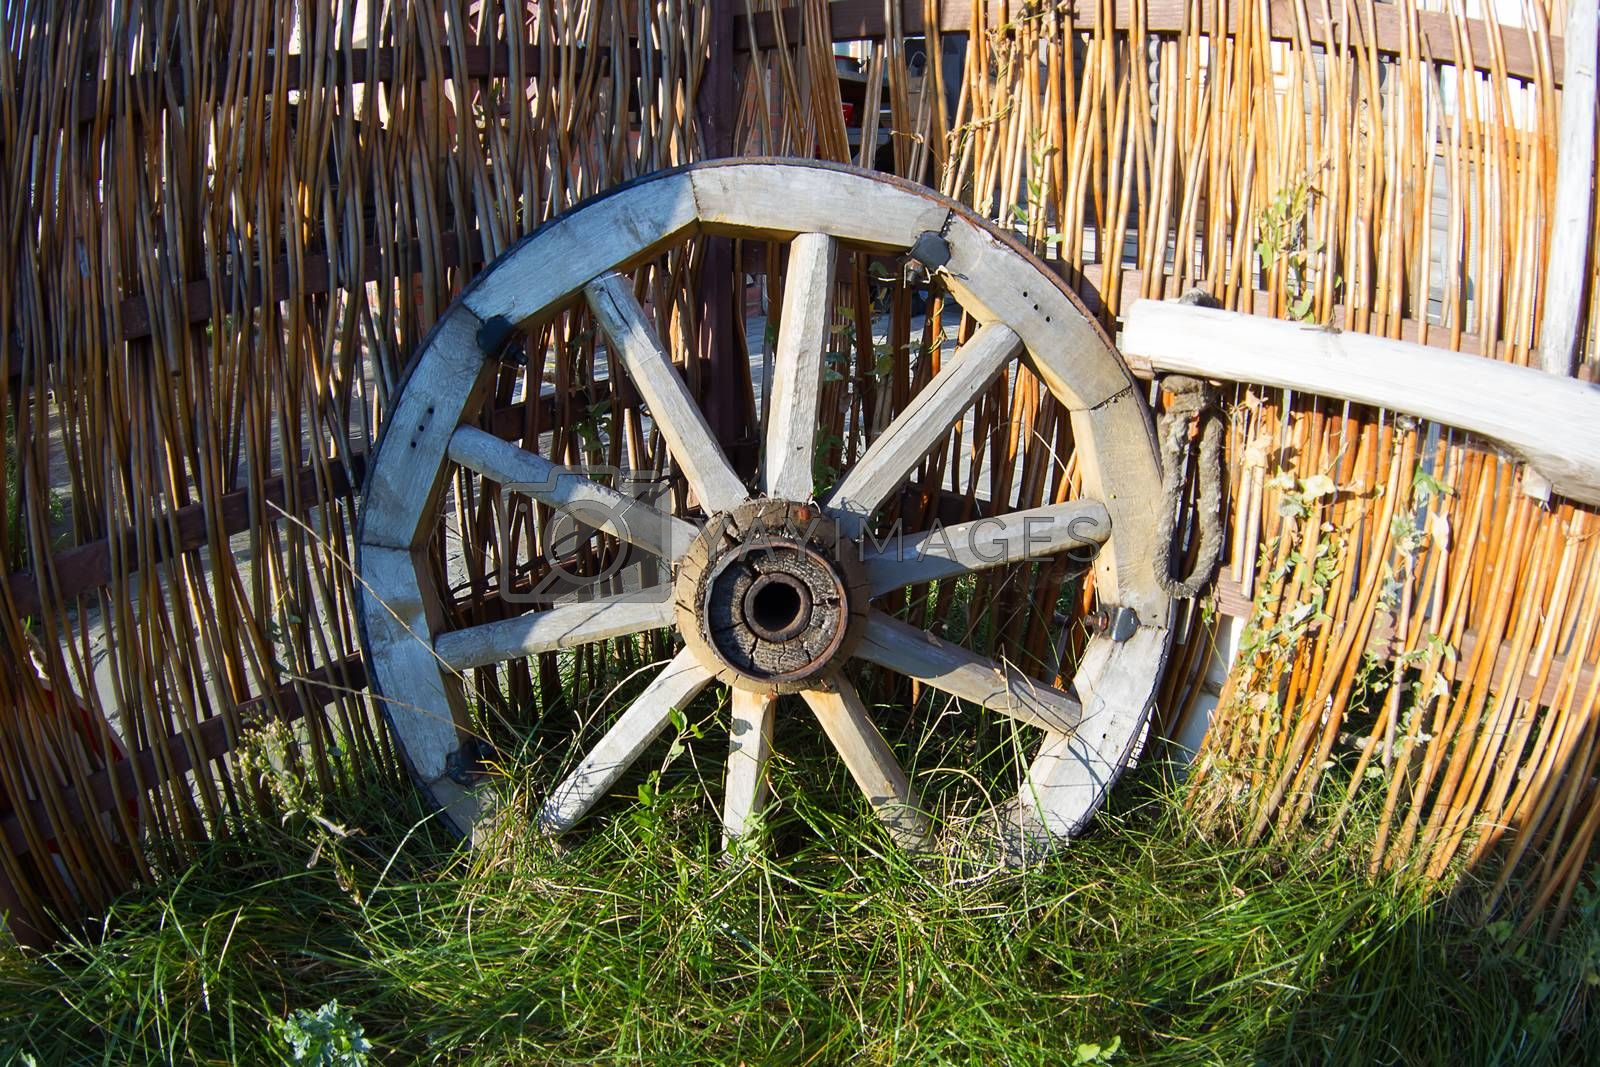 Wooden wheel from a cart